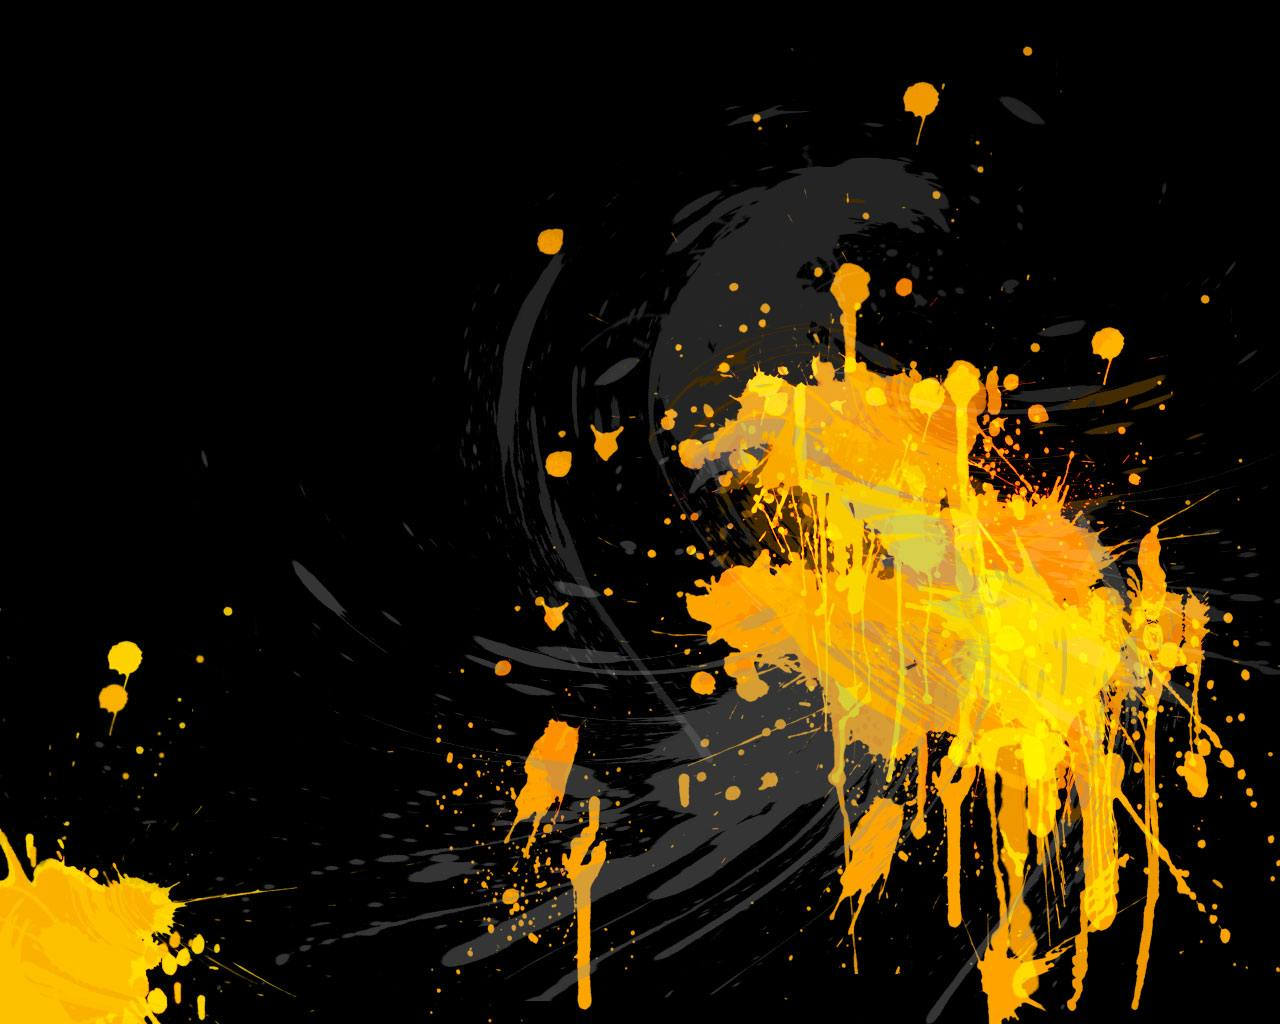 21+ Paint Splatter Backgrounds, Wallpapers, Images ...